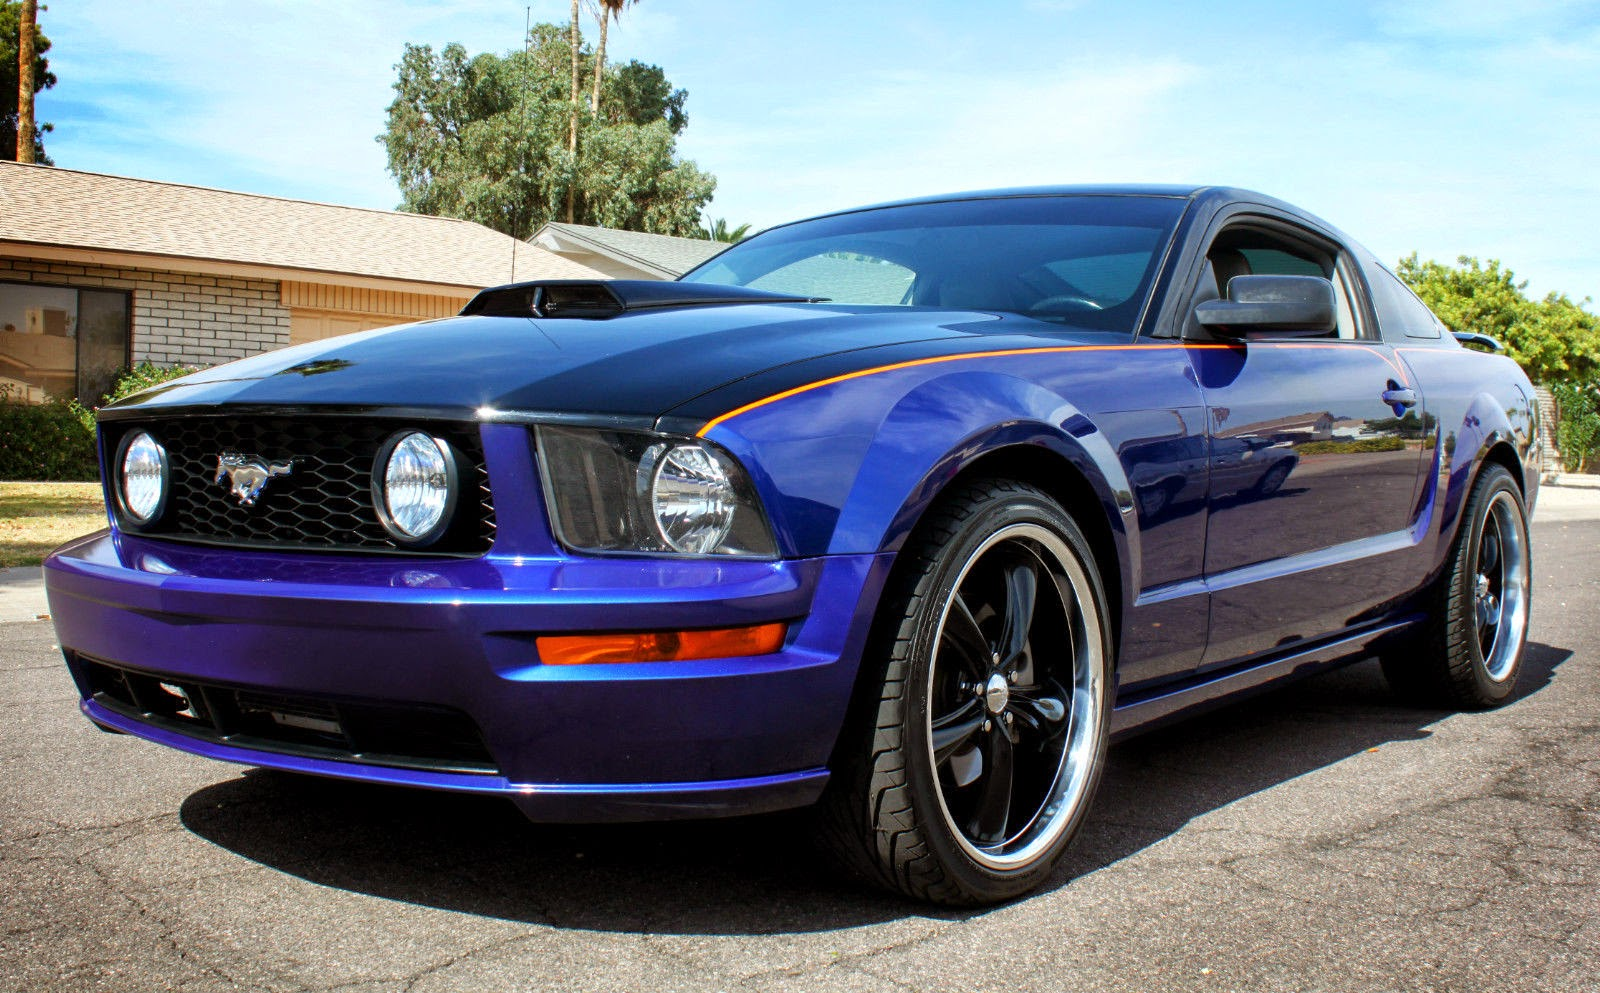 custom painted v8 2006 mustang gt premium for sale american muscle cars - Mustang 2014 Purple